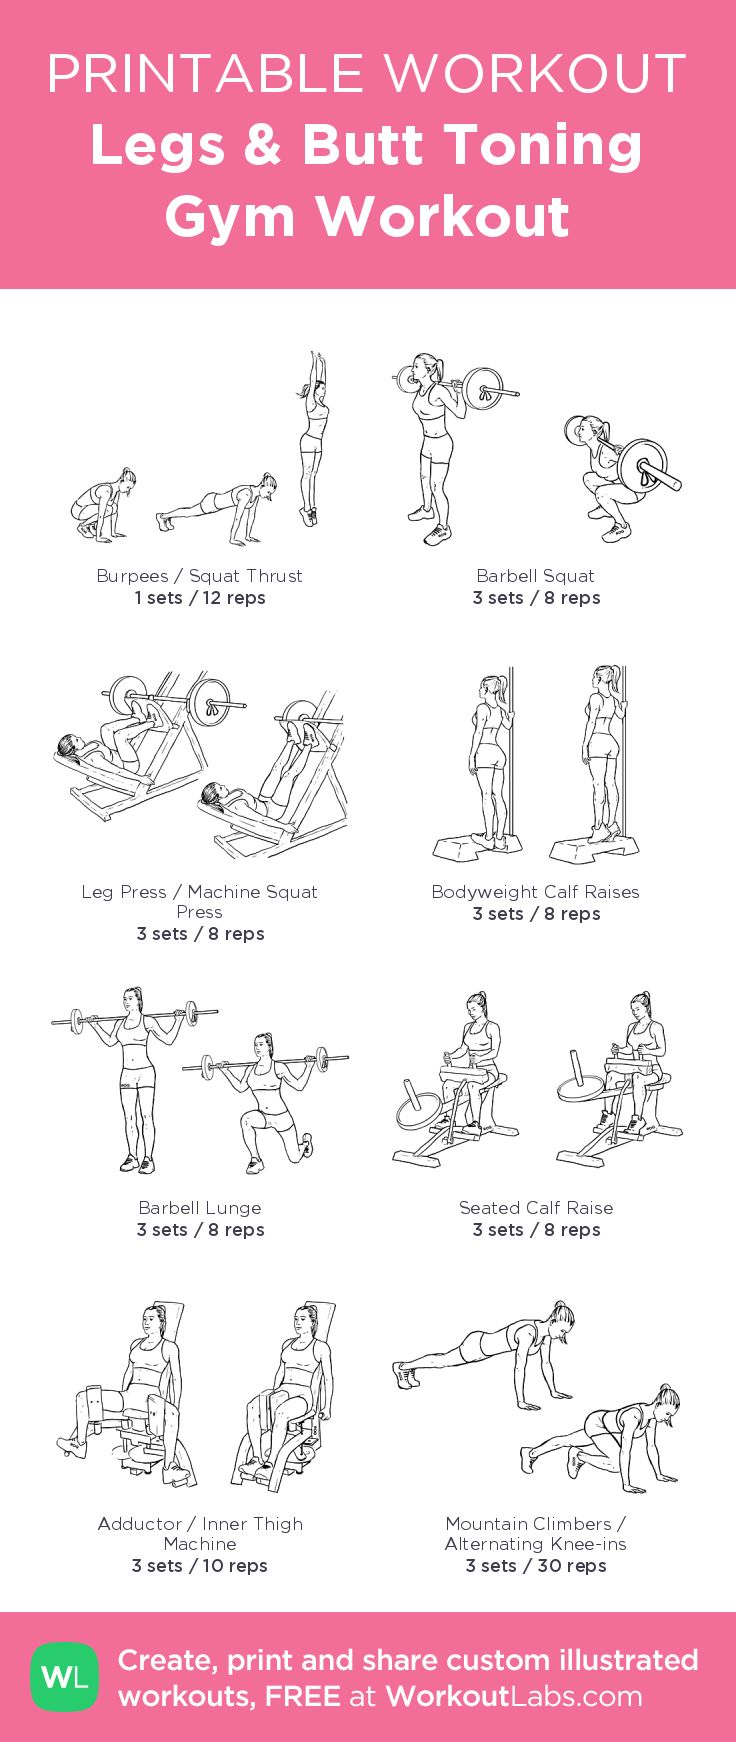 Legs & Butt Toning Gym Workout: my visual workout created at WorkoutLabs.com • Click through to customize and download as a FREE PDF! #customworkout